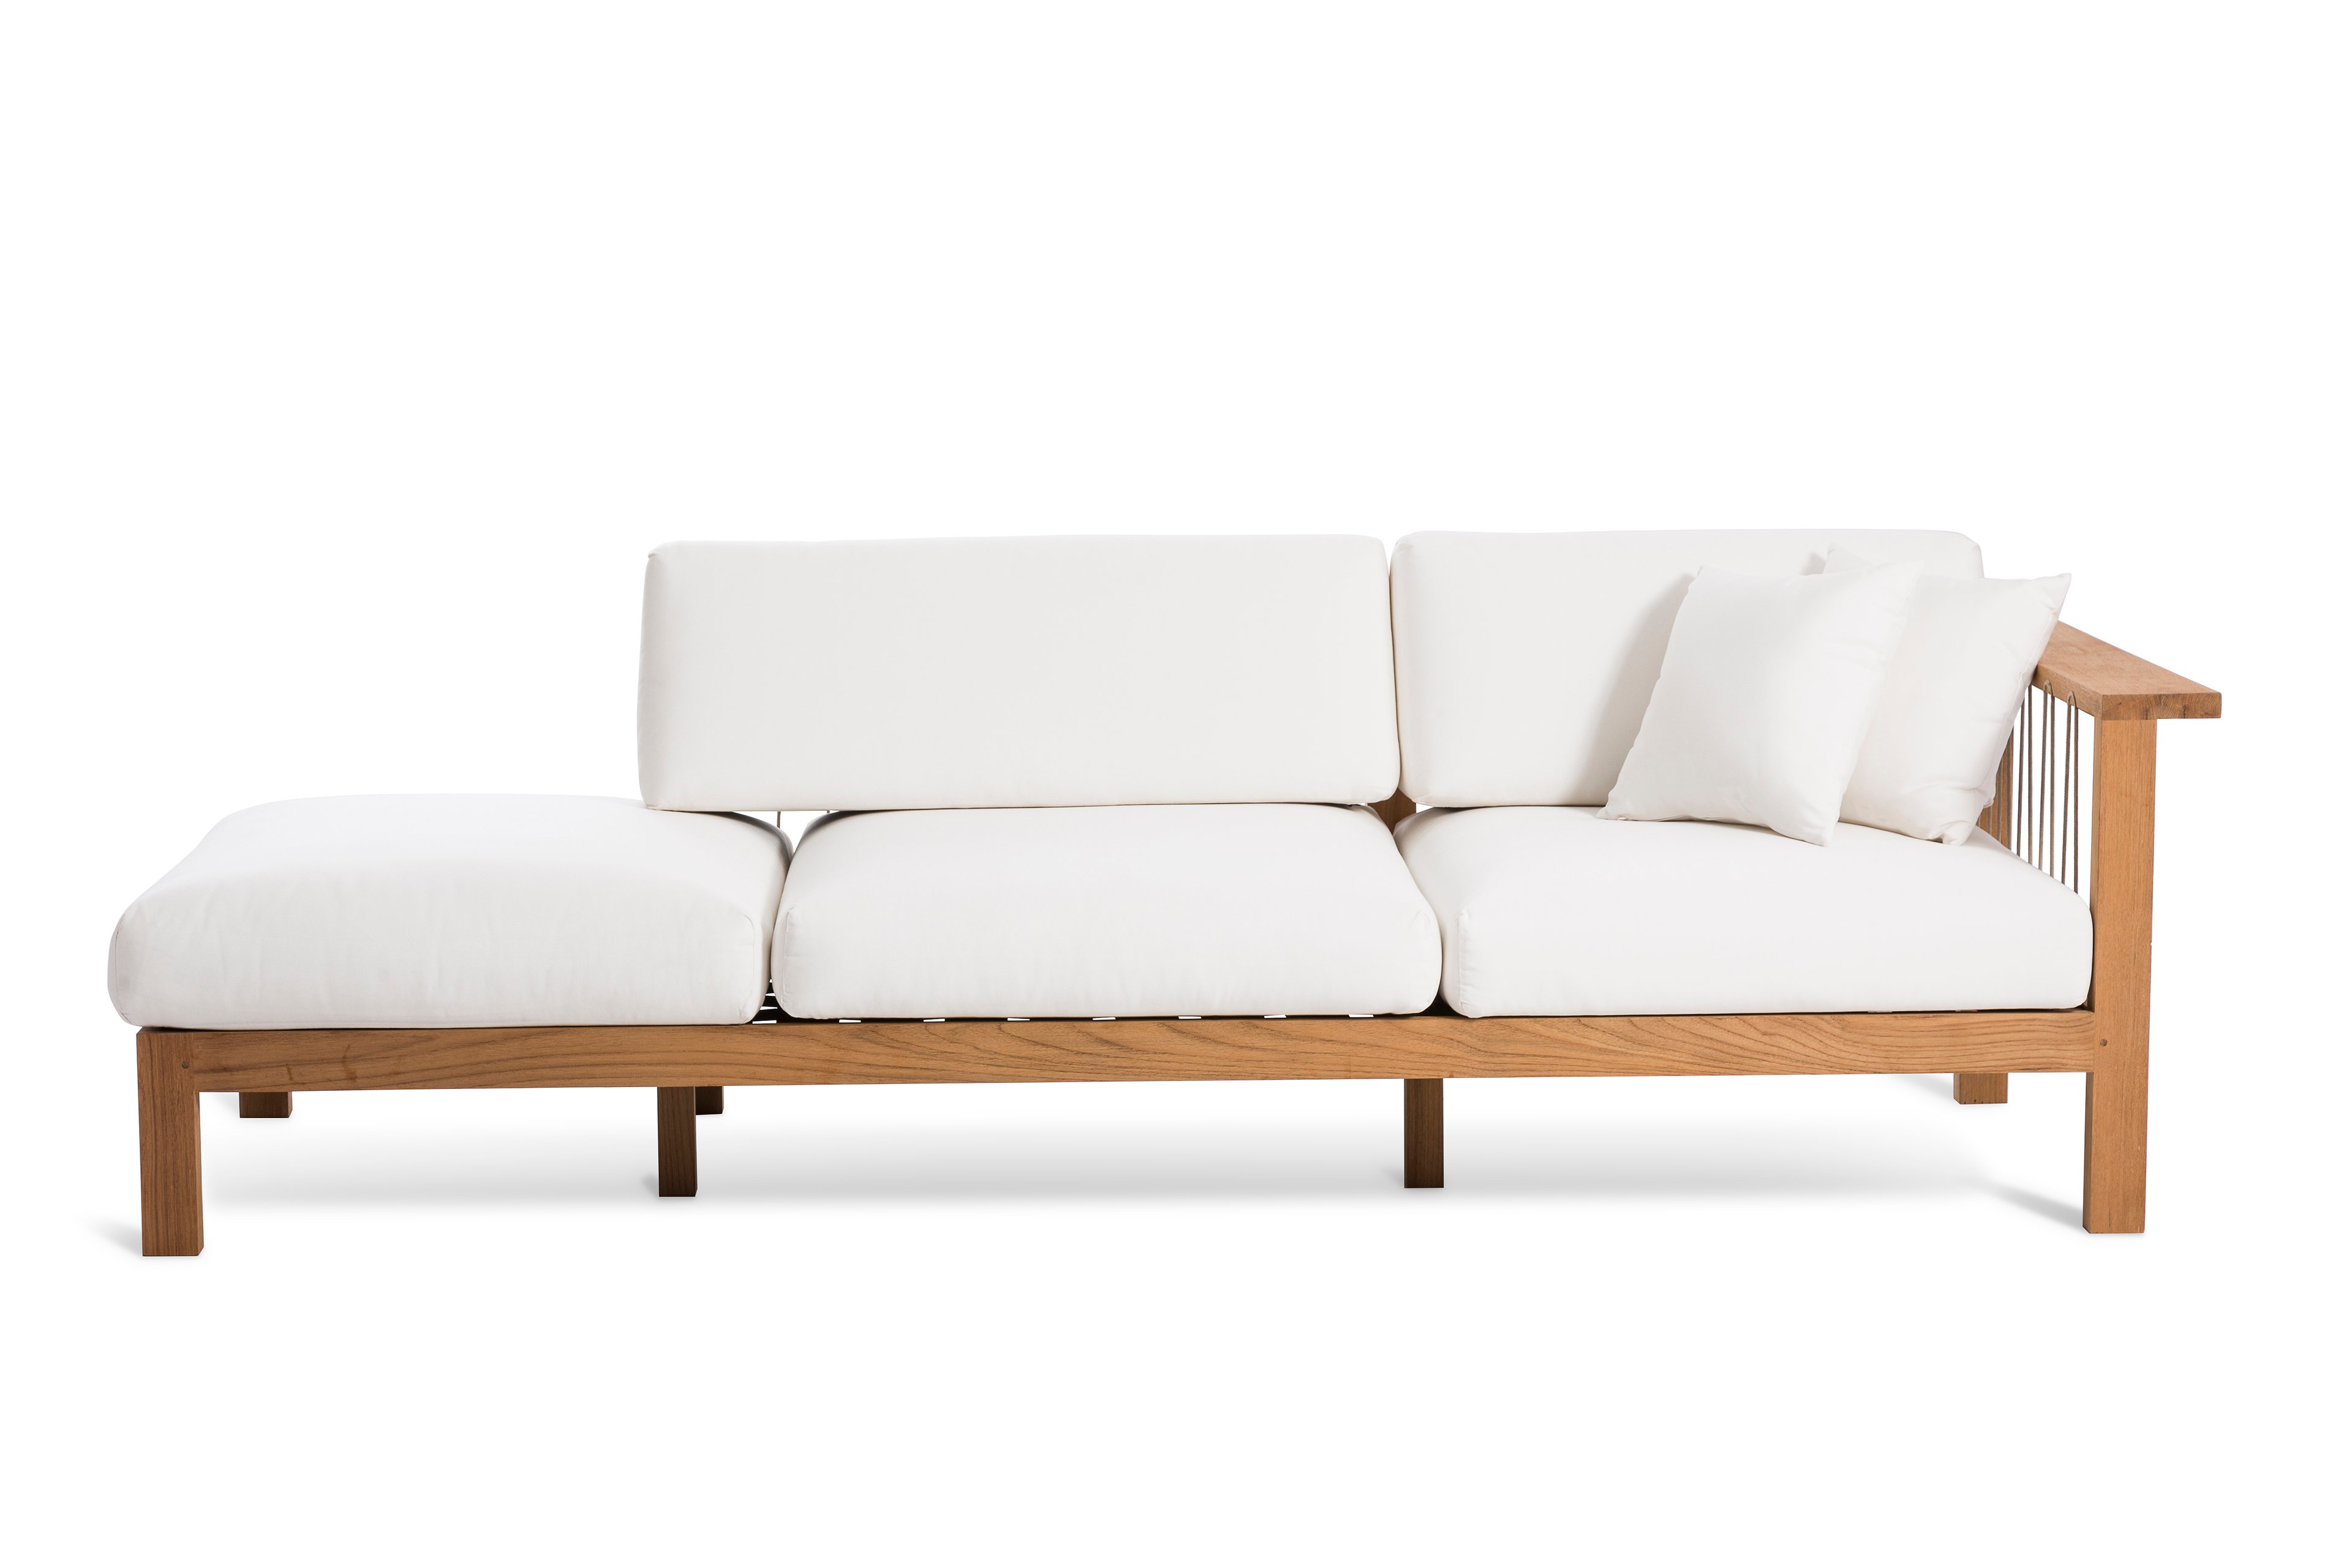 Maro sofa with chaise longue by oasiq design gijs papavoine for Chaise longue manufacturers